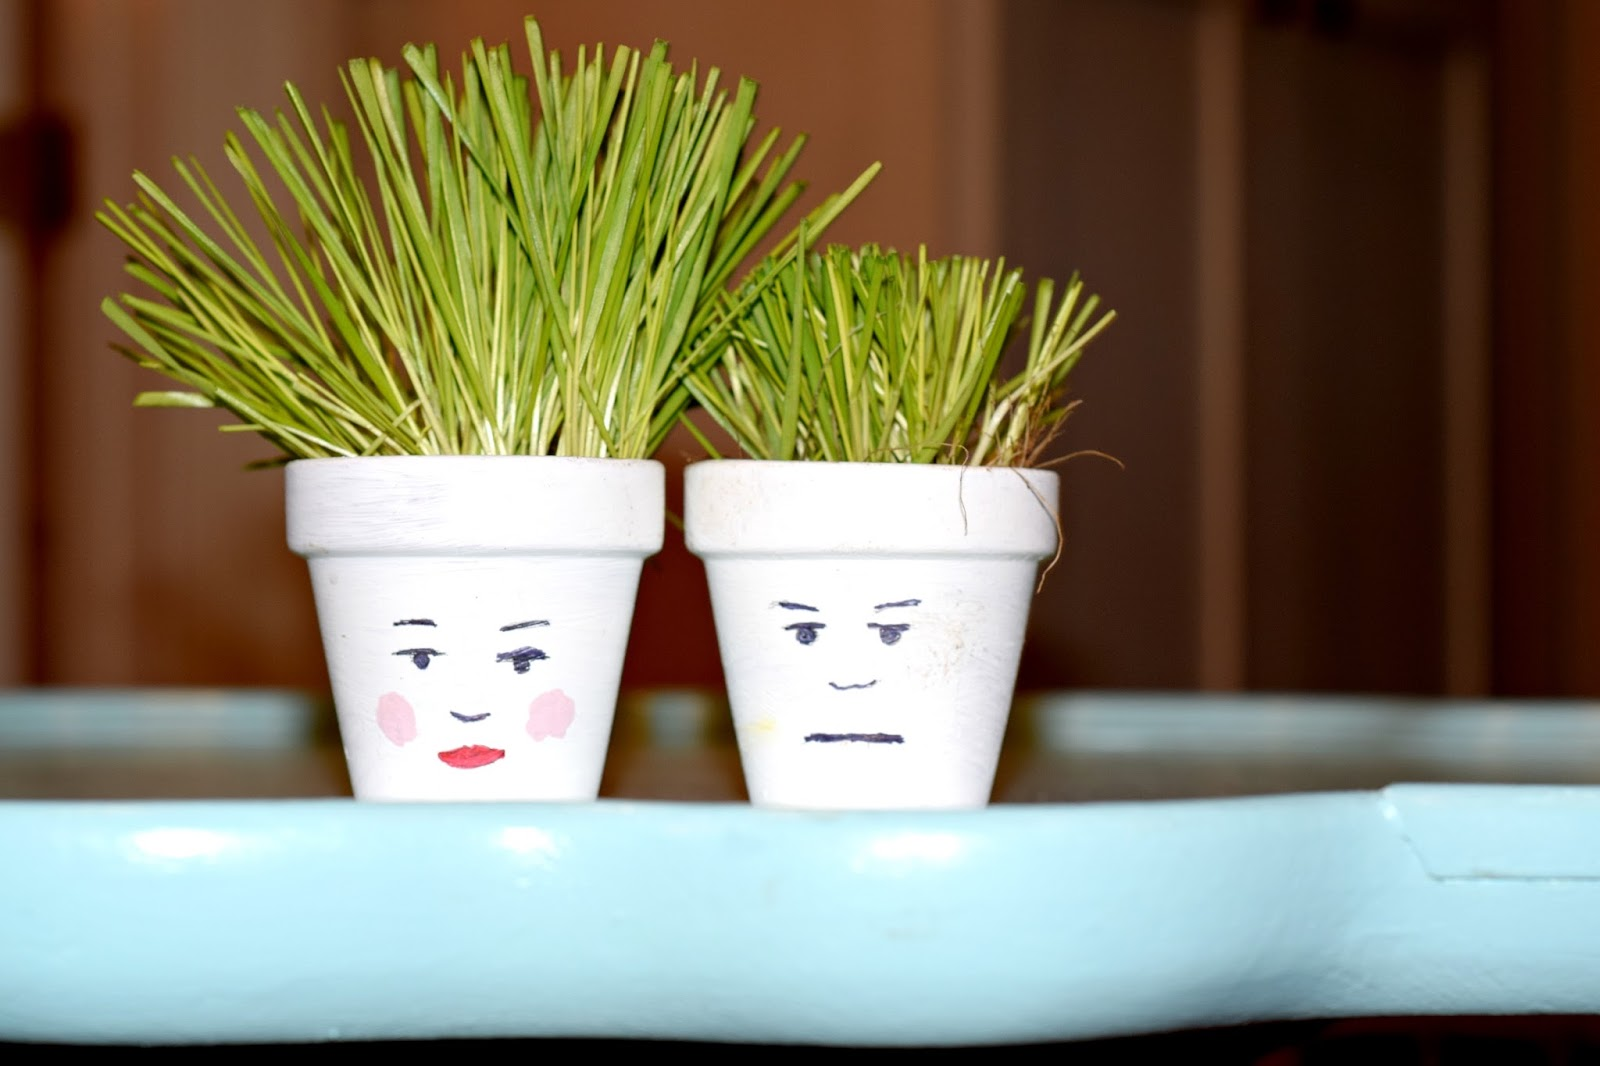 Spring Crafting Diy Painted Pot Faces With Wheat Grass